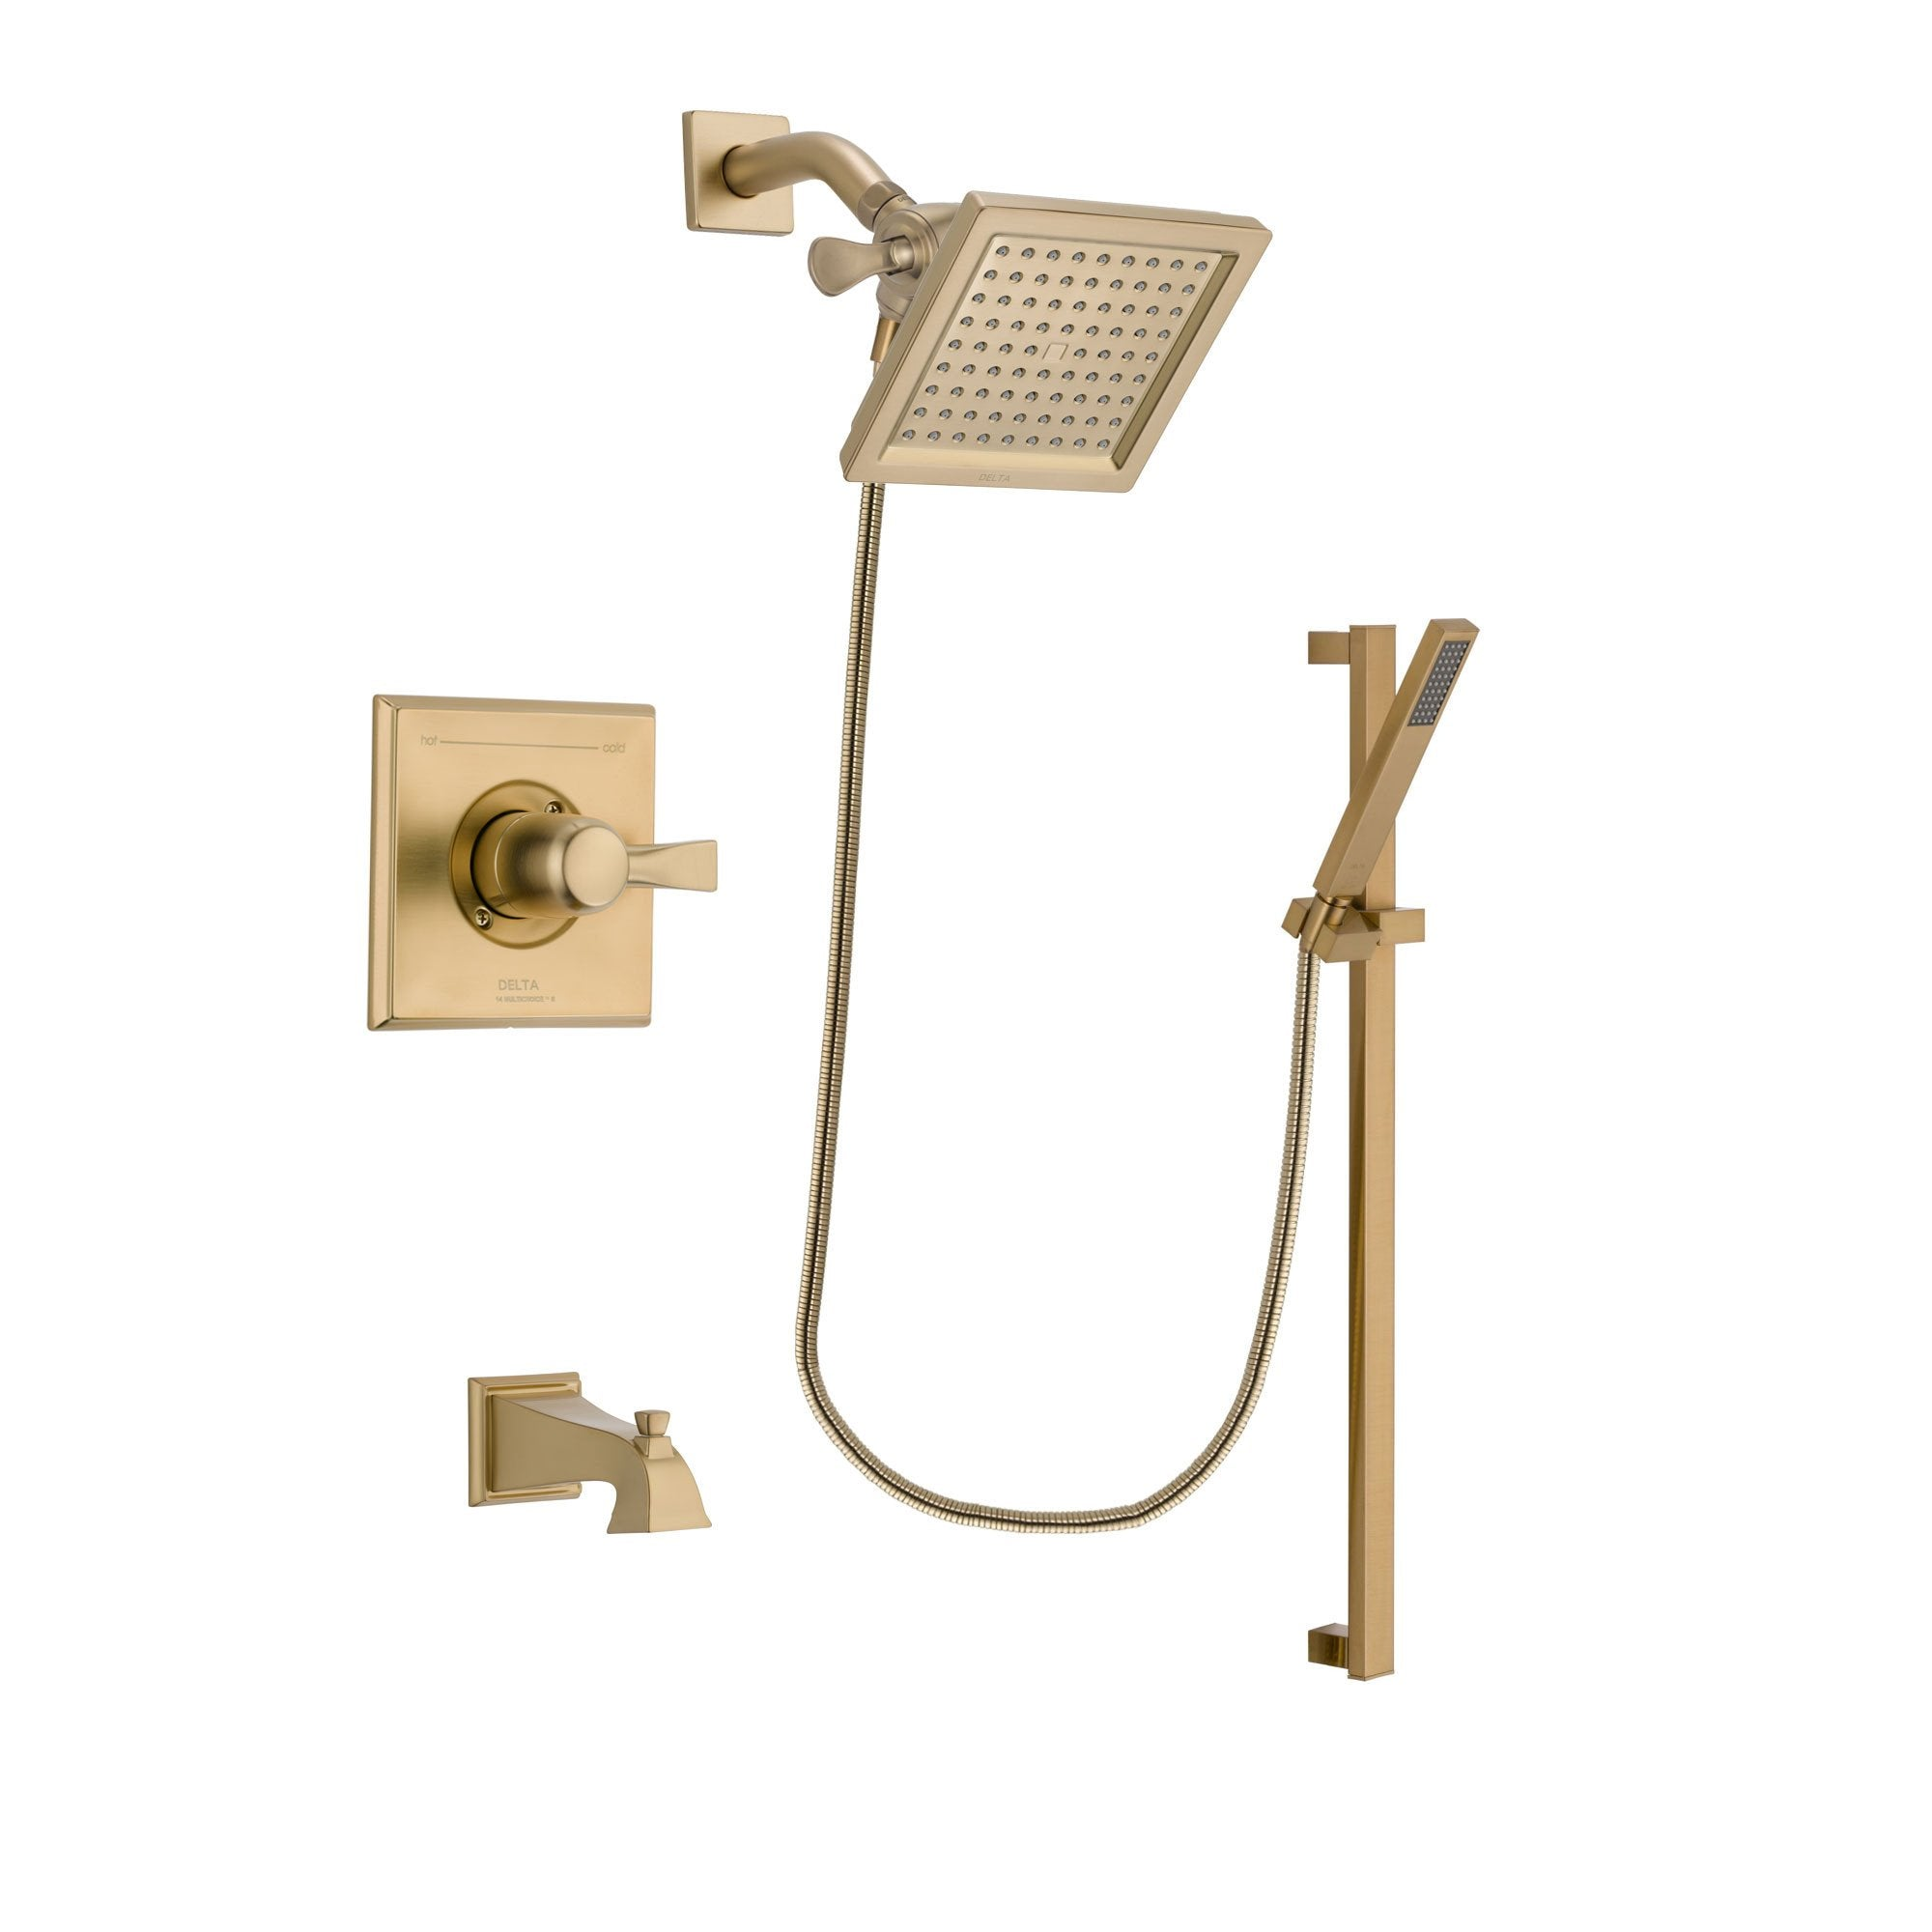 Delta Dryden Champagne Bronze Tub and Shower System with Hand Shower DSP3997V